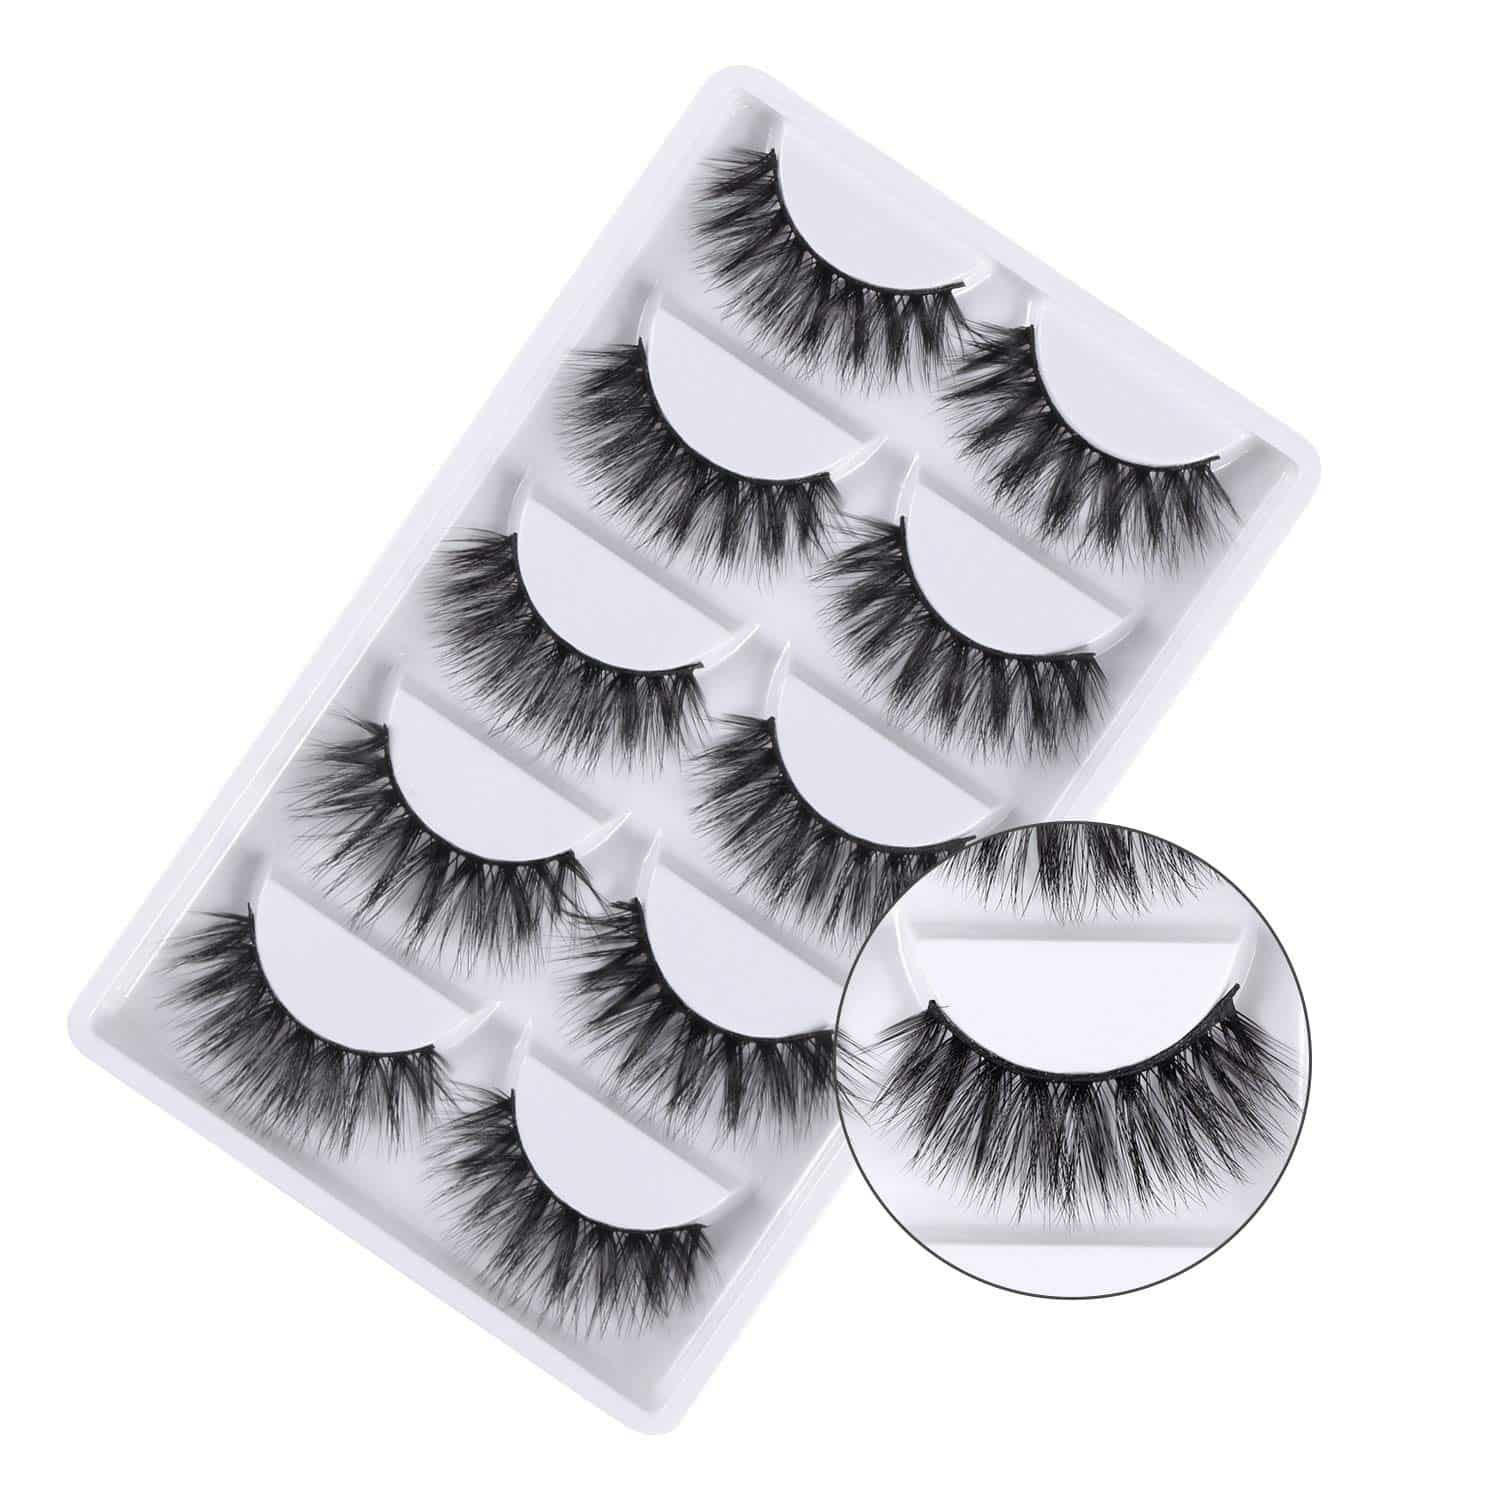 EVERMARKET 3D False Eyelashes